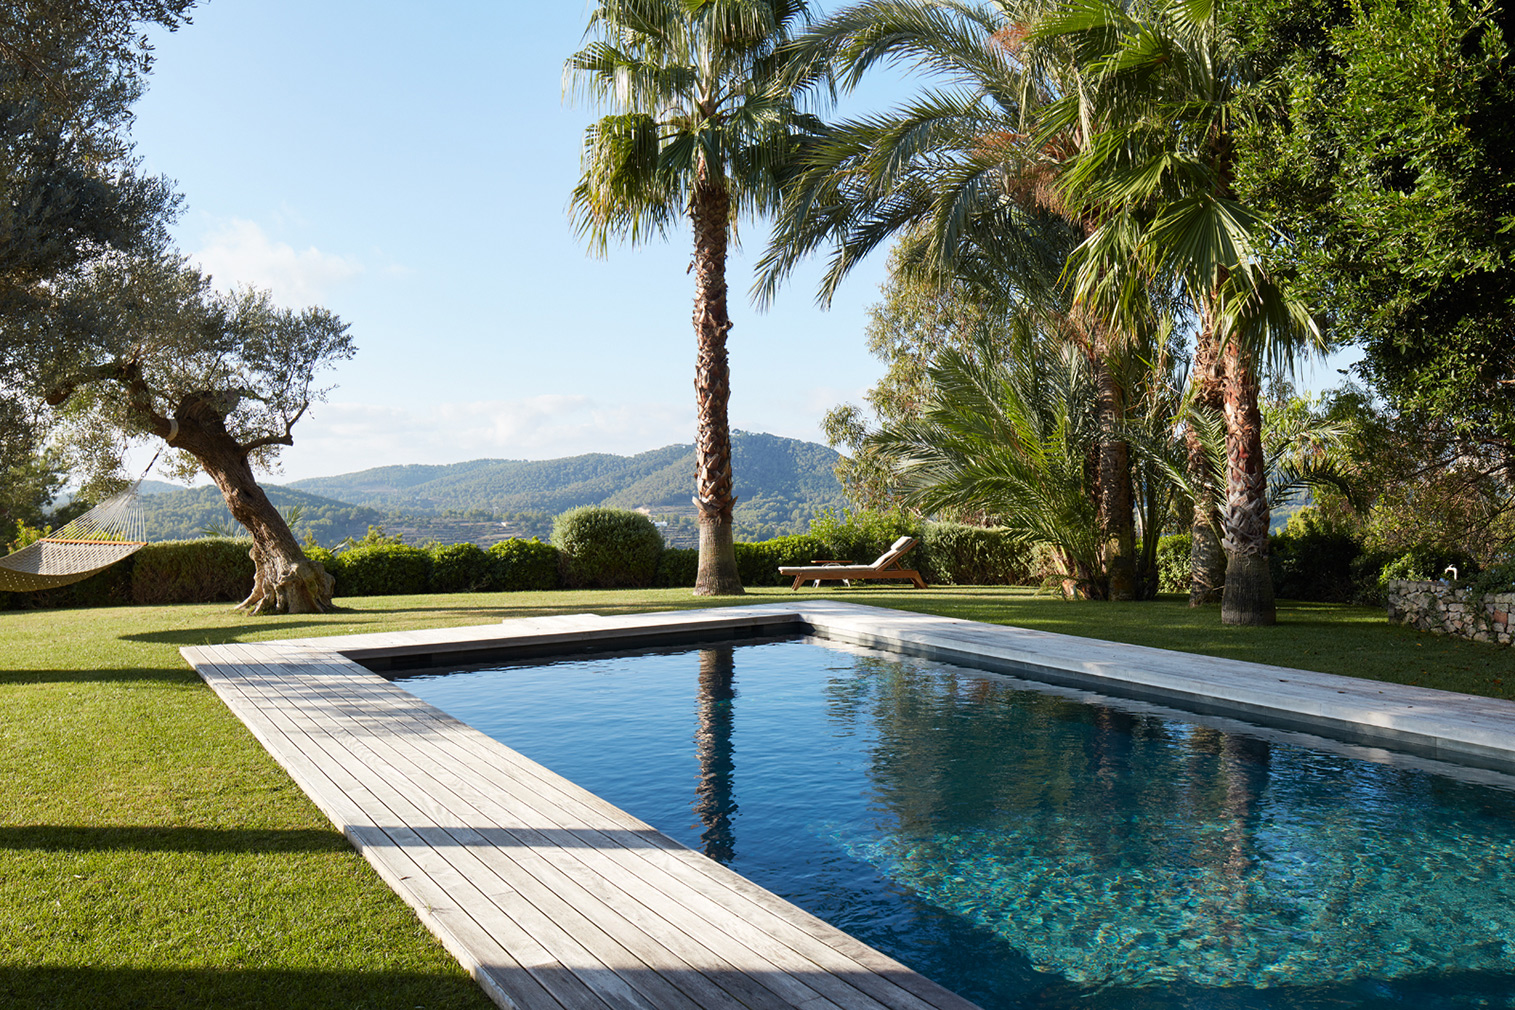 Ibiza holiday home for sale via Sotheby's International Realty